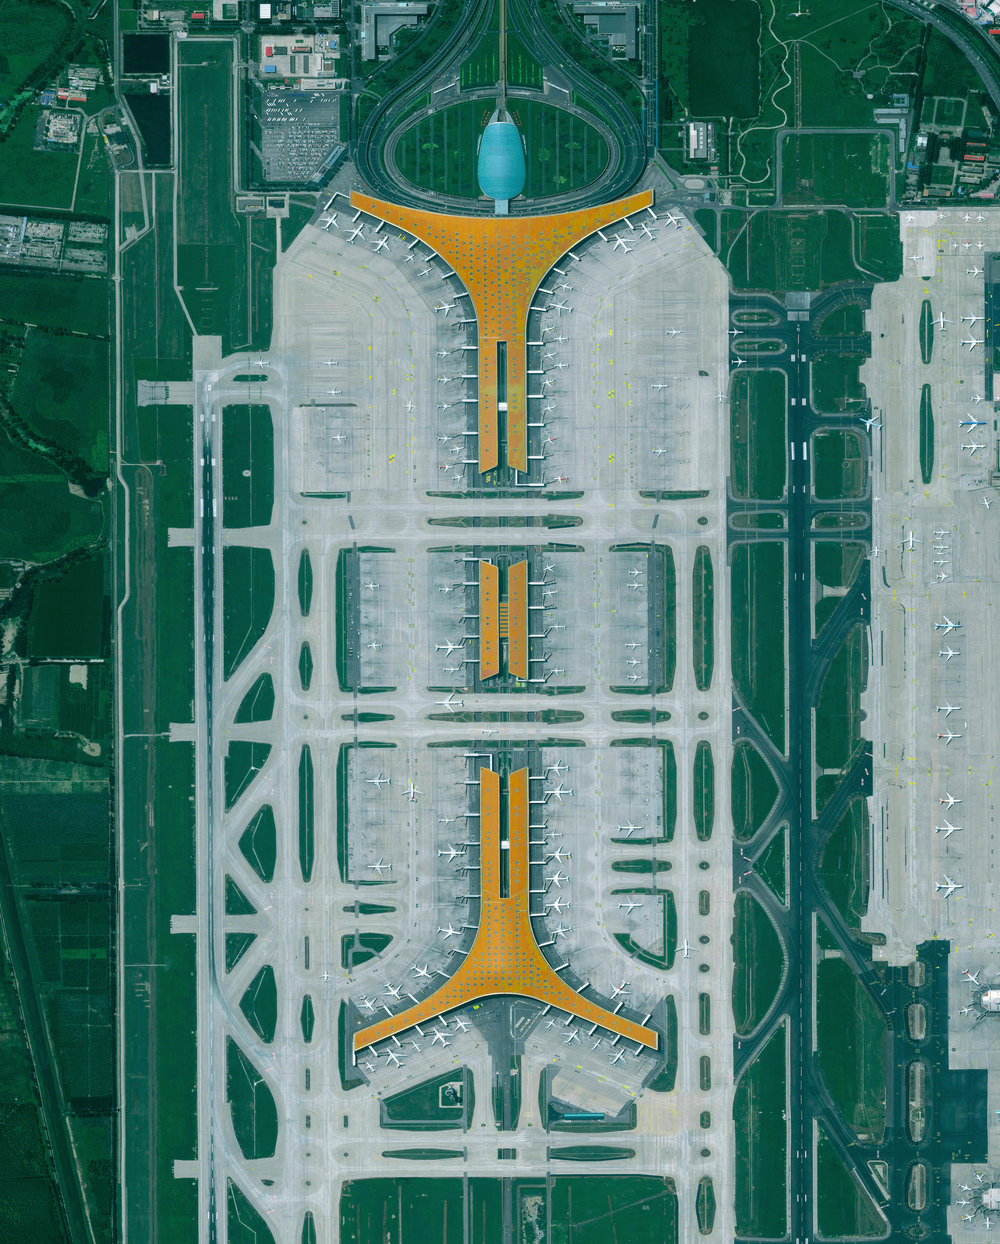 11/16/2016   Beijing Capital International Airport   Beijing, China  40°04′21″N 116°35′51″E     Beijing Capital International Airport is the second busiest airport in the world, handling more than 90 million passengers every year. The dragon-like layout of the terminals is meant to celebrate the thrill and poetry of flight, while the orange roof evokes the vibrant coloration of the city's famed Forbidden City.